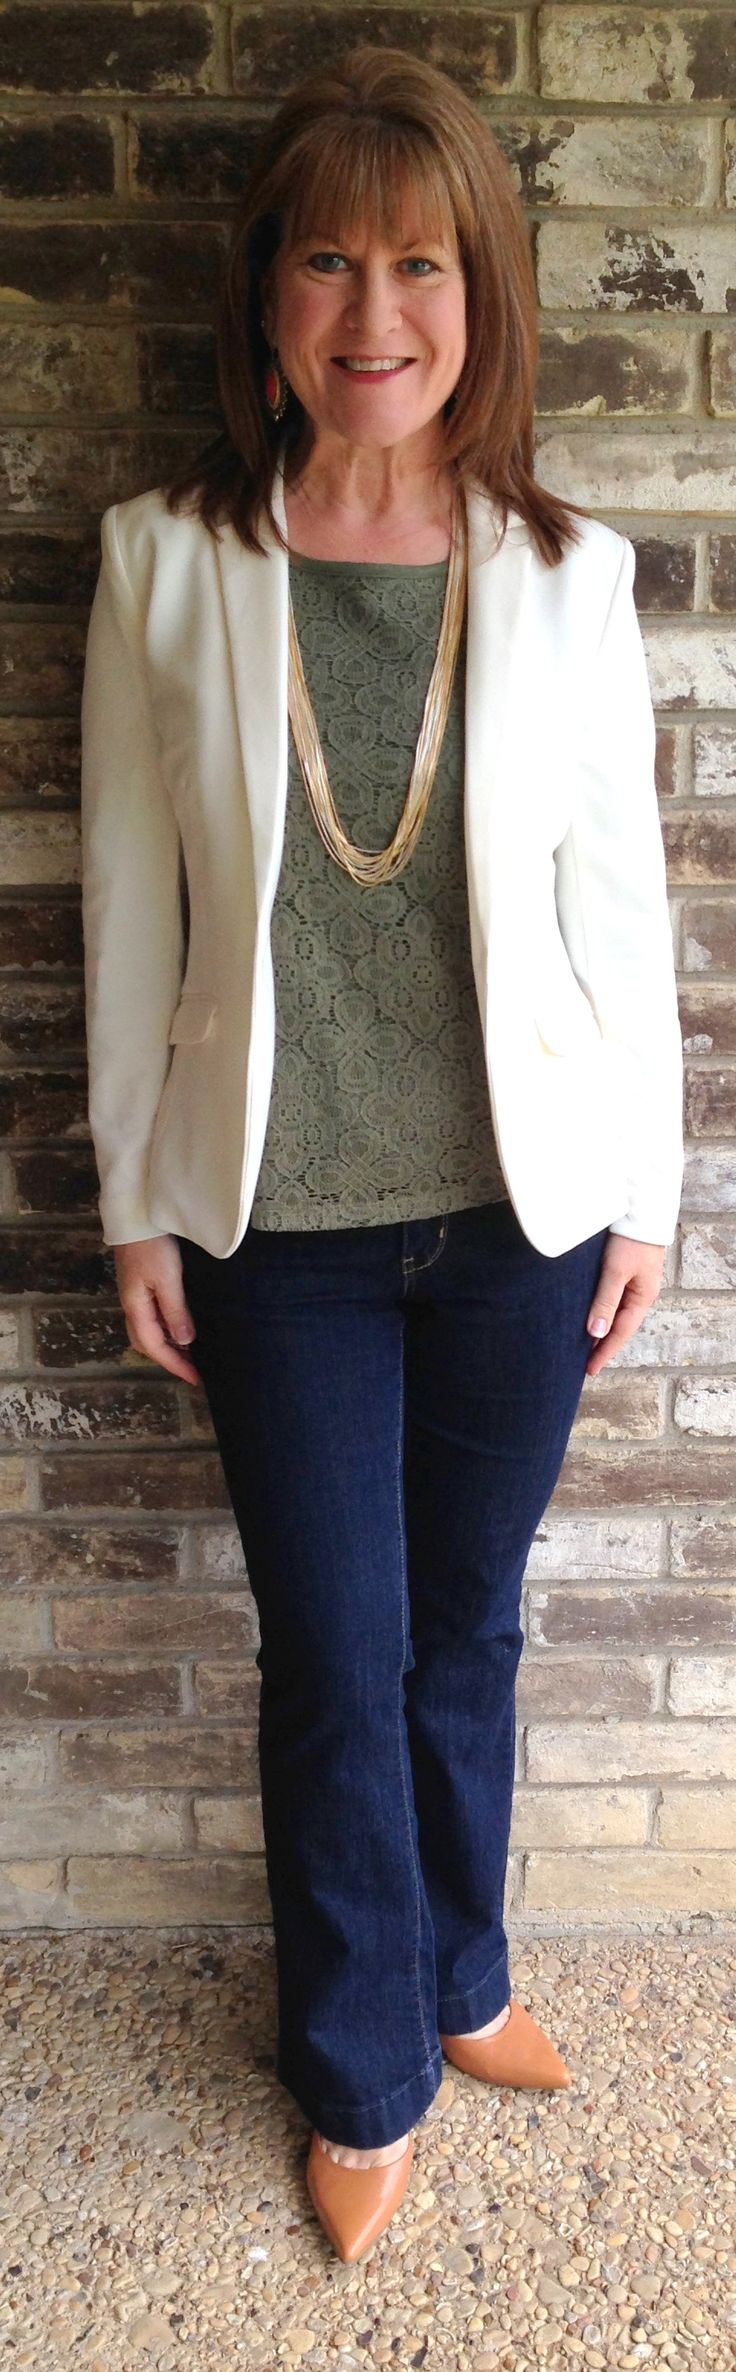 Casual fashion for over 60 - Clothing For Women Over 50 One Of Those Days